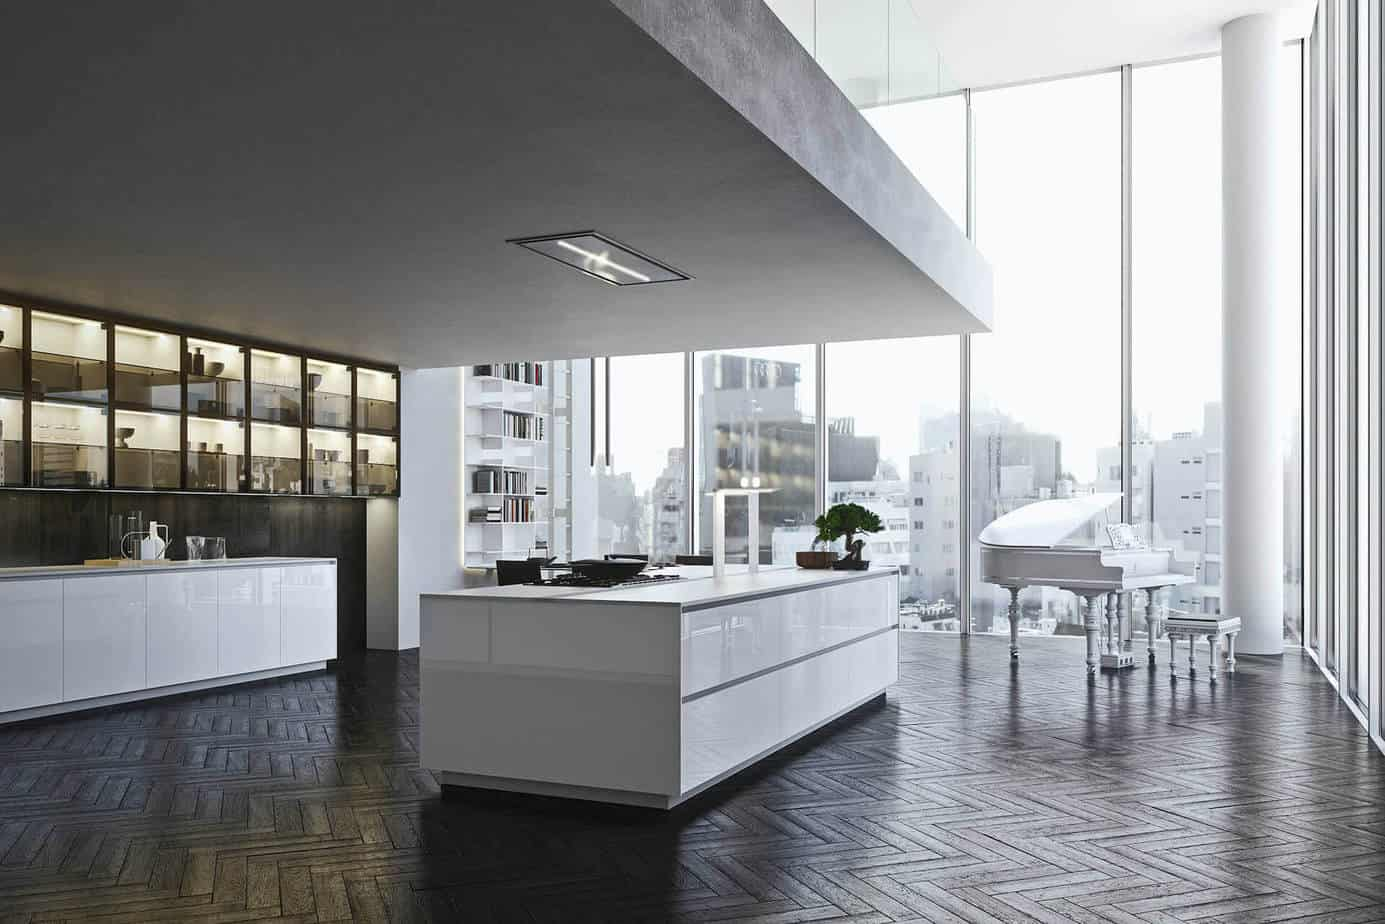 High Gloss Kitchen Cabinets Pros and Cons